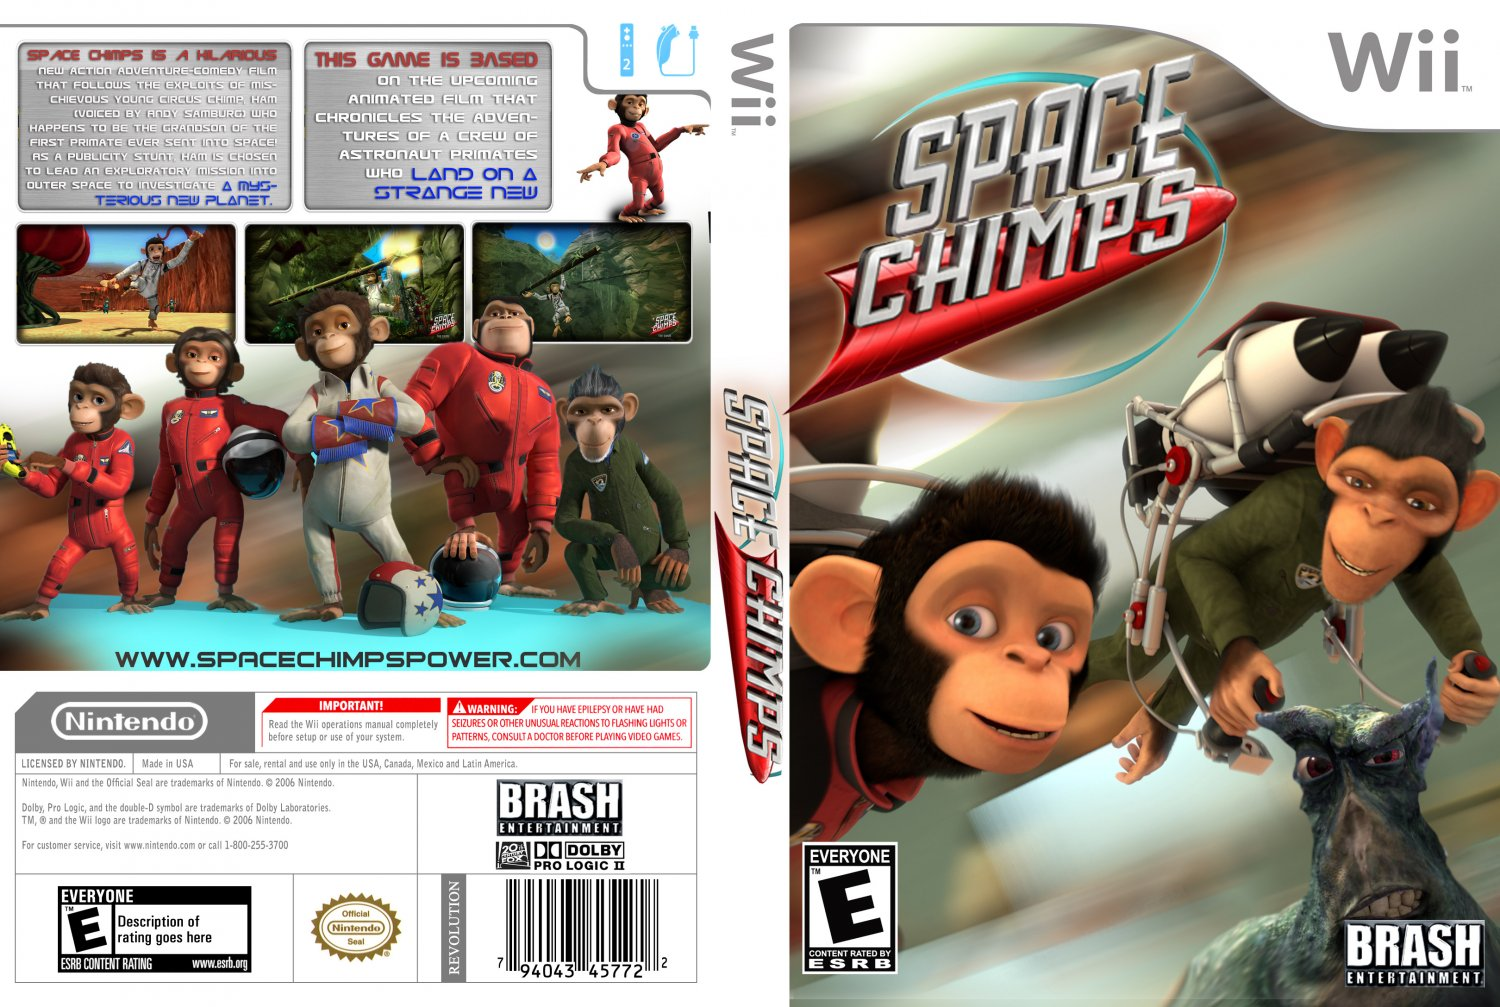 Space chimps nintendo wii game review